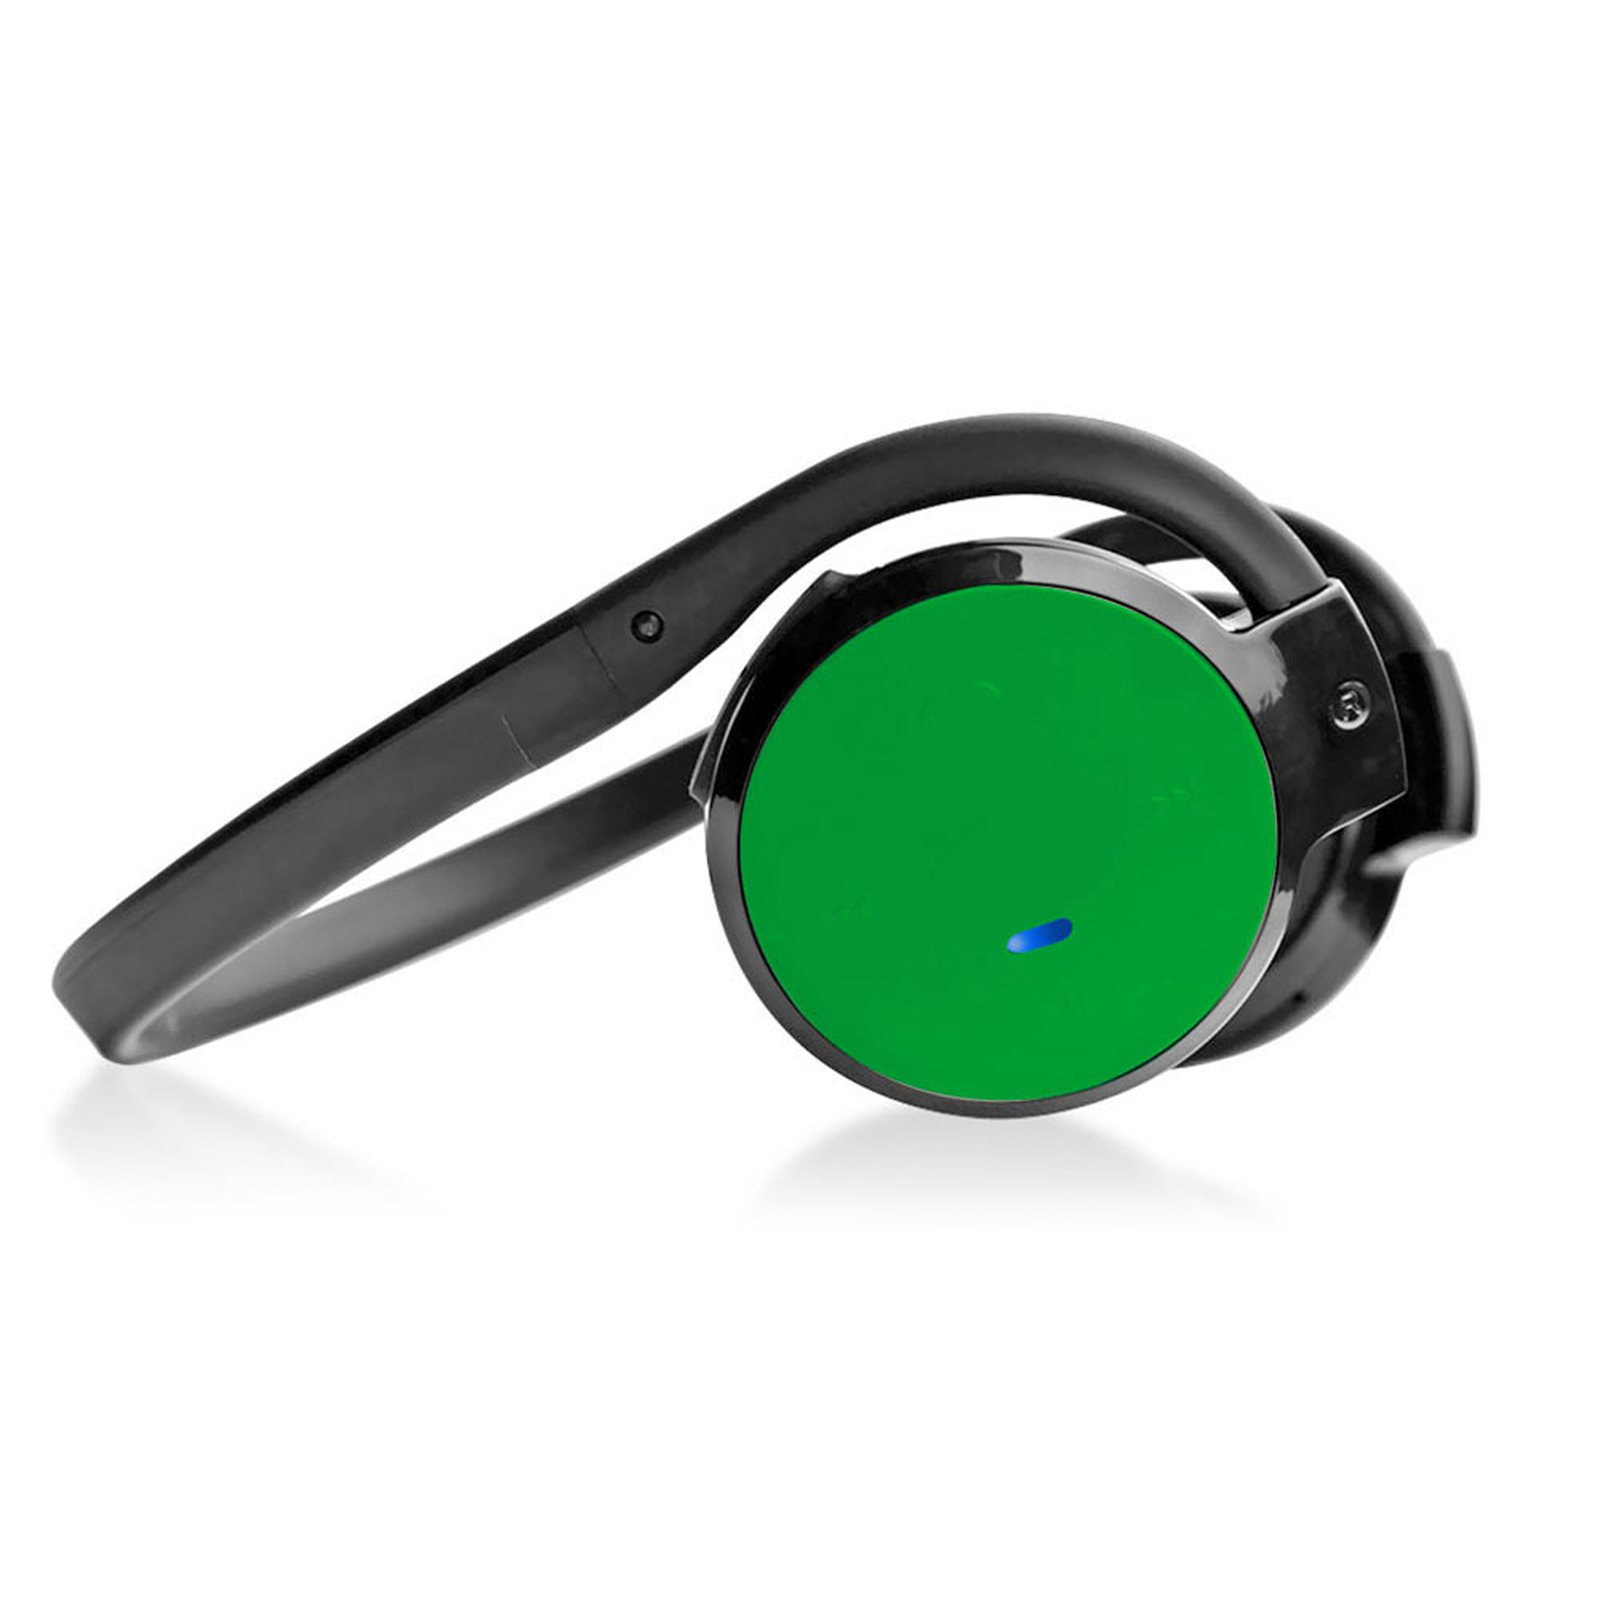 Pyle Stereo BT Streaming Cordless Headphones with Built-in Microphone - Works with All BT-Enabled Phones and Devices (Green)